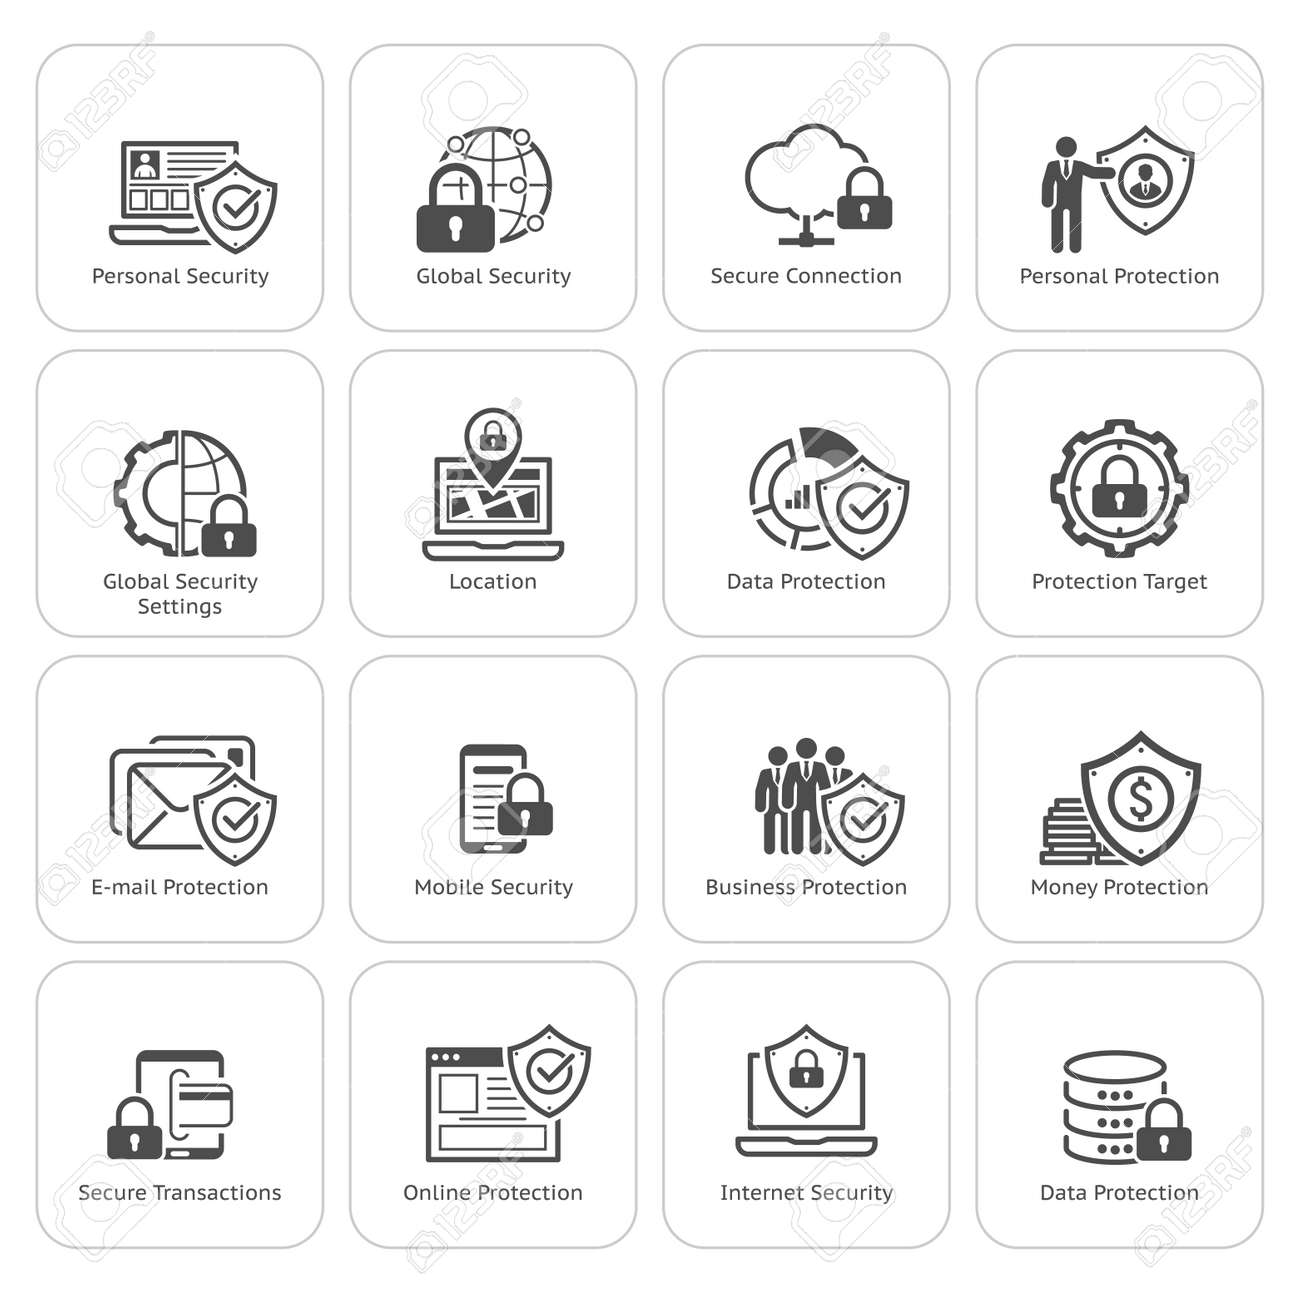 Flat Design Protection and Security Icons Set. Isolated Illustration. - 48455329